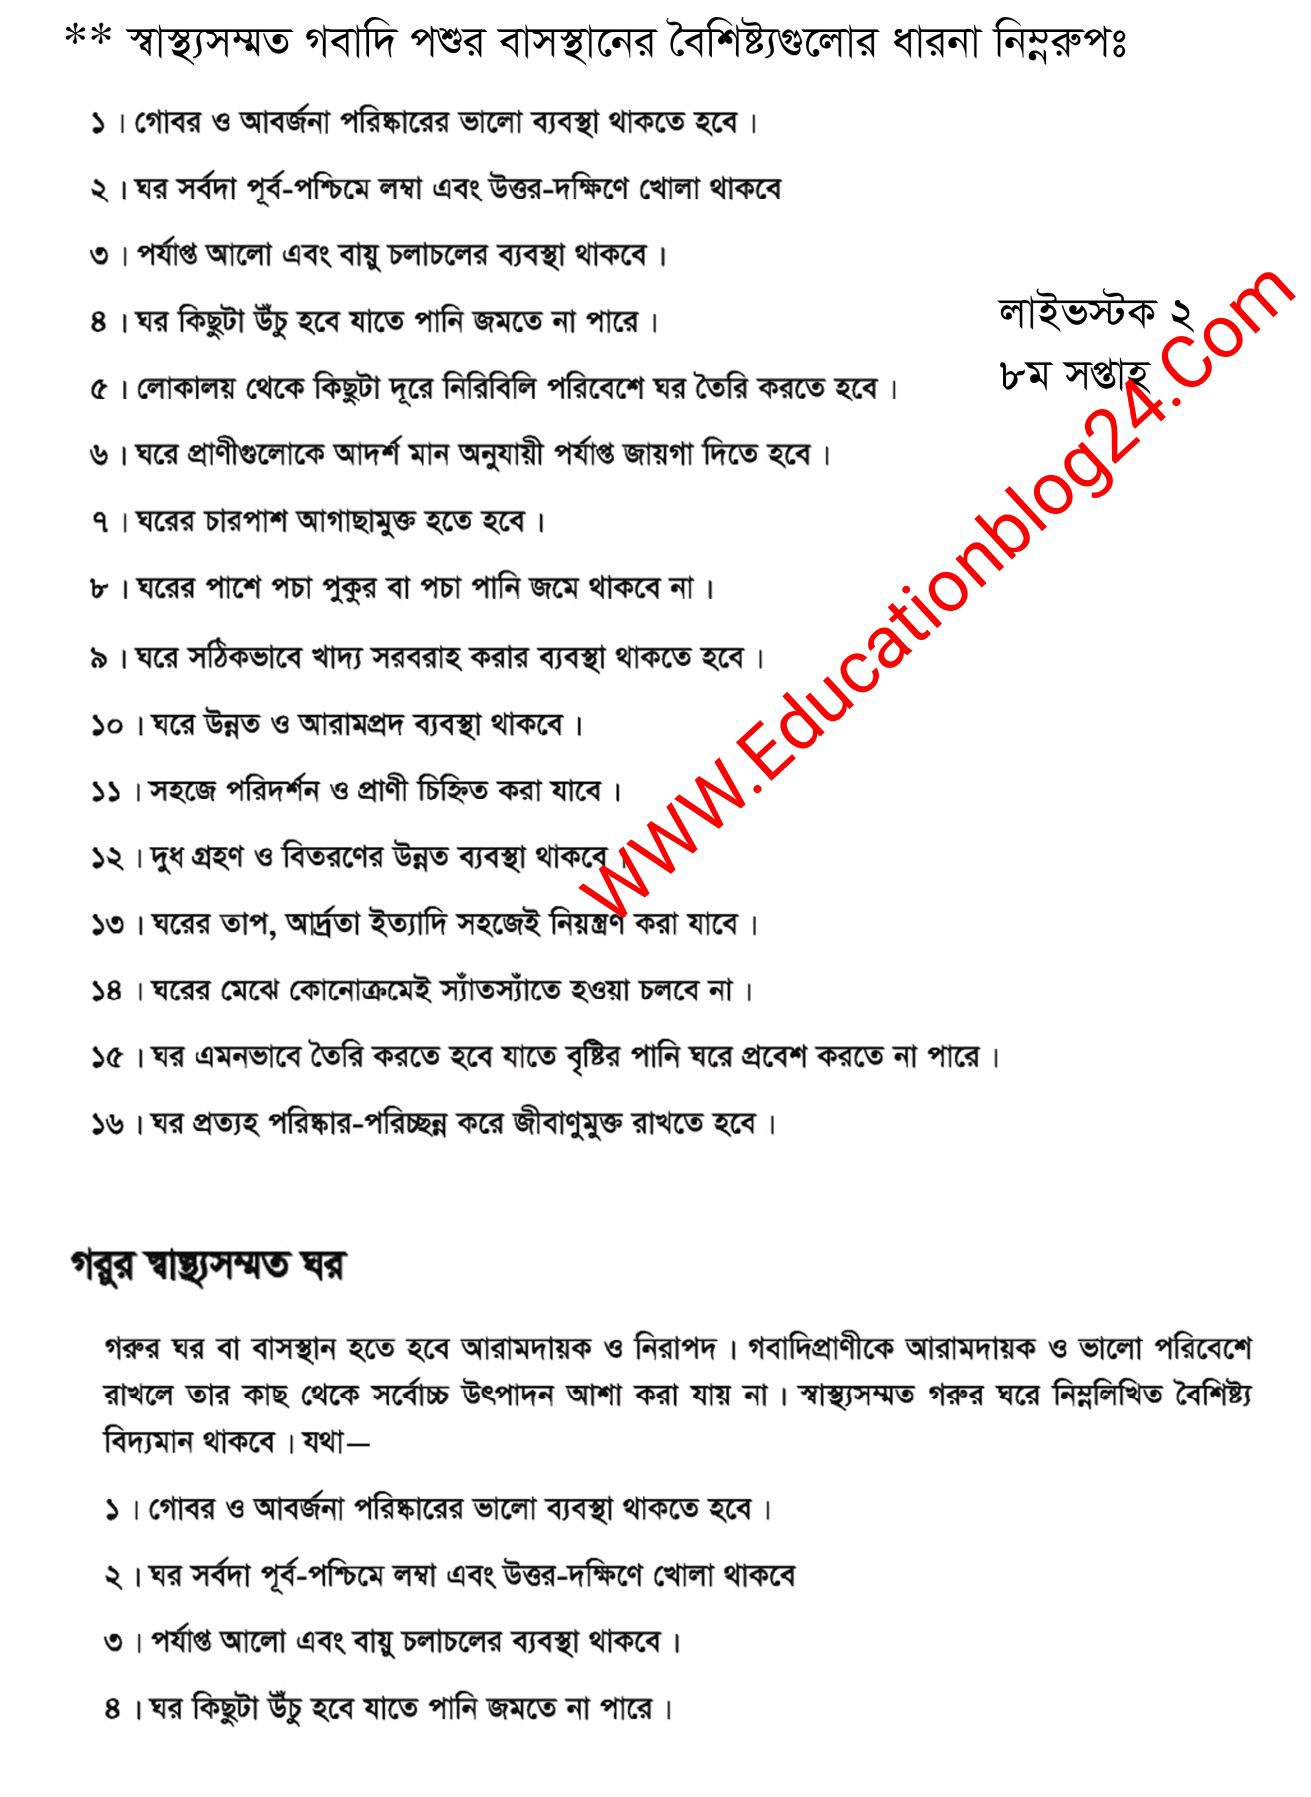 SSC / Dakhil (Vocational) Livestock Rearing and Farming Assignment Answer 2021 14